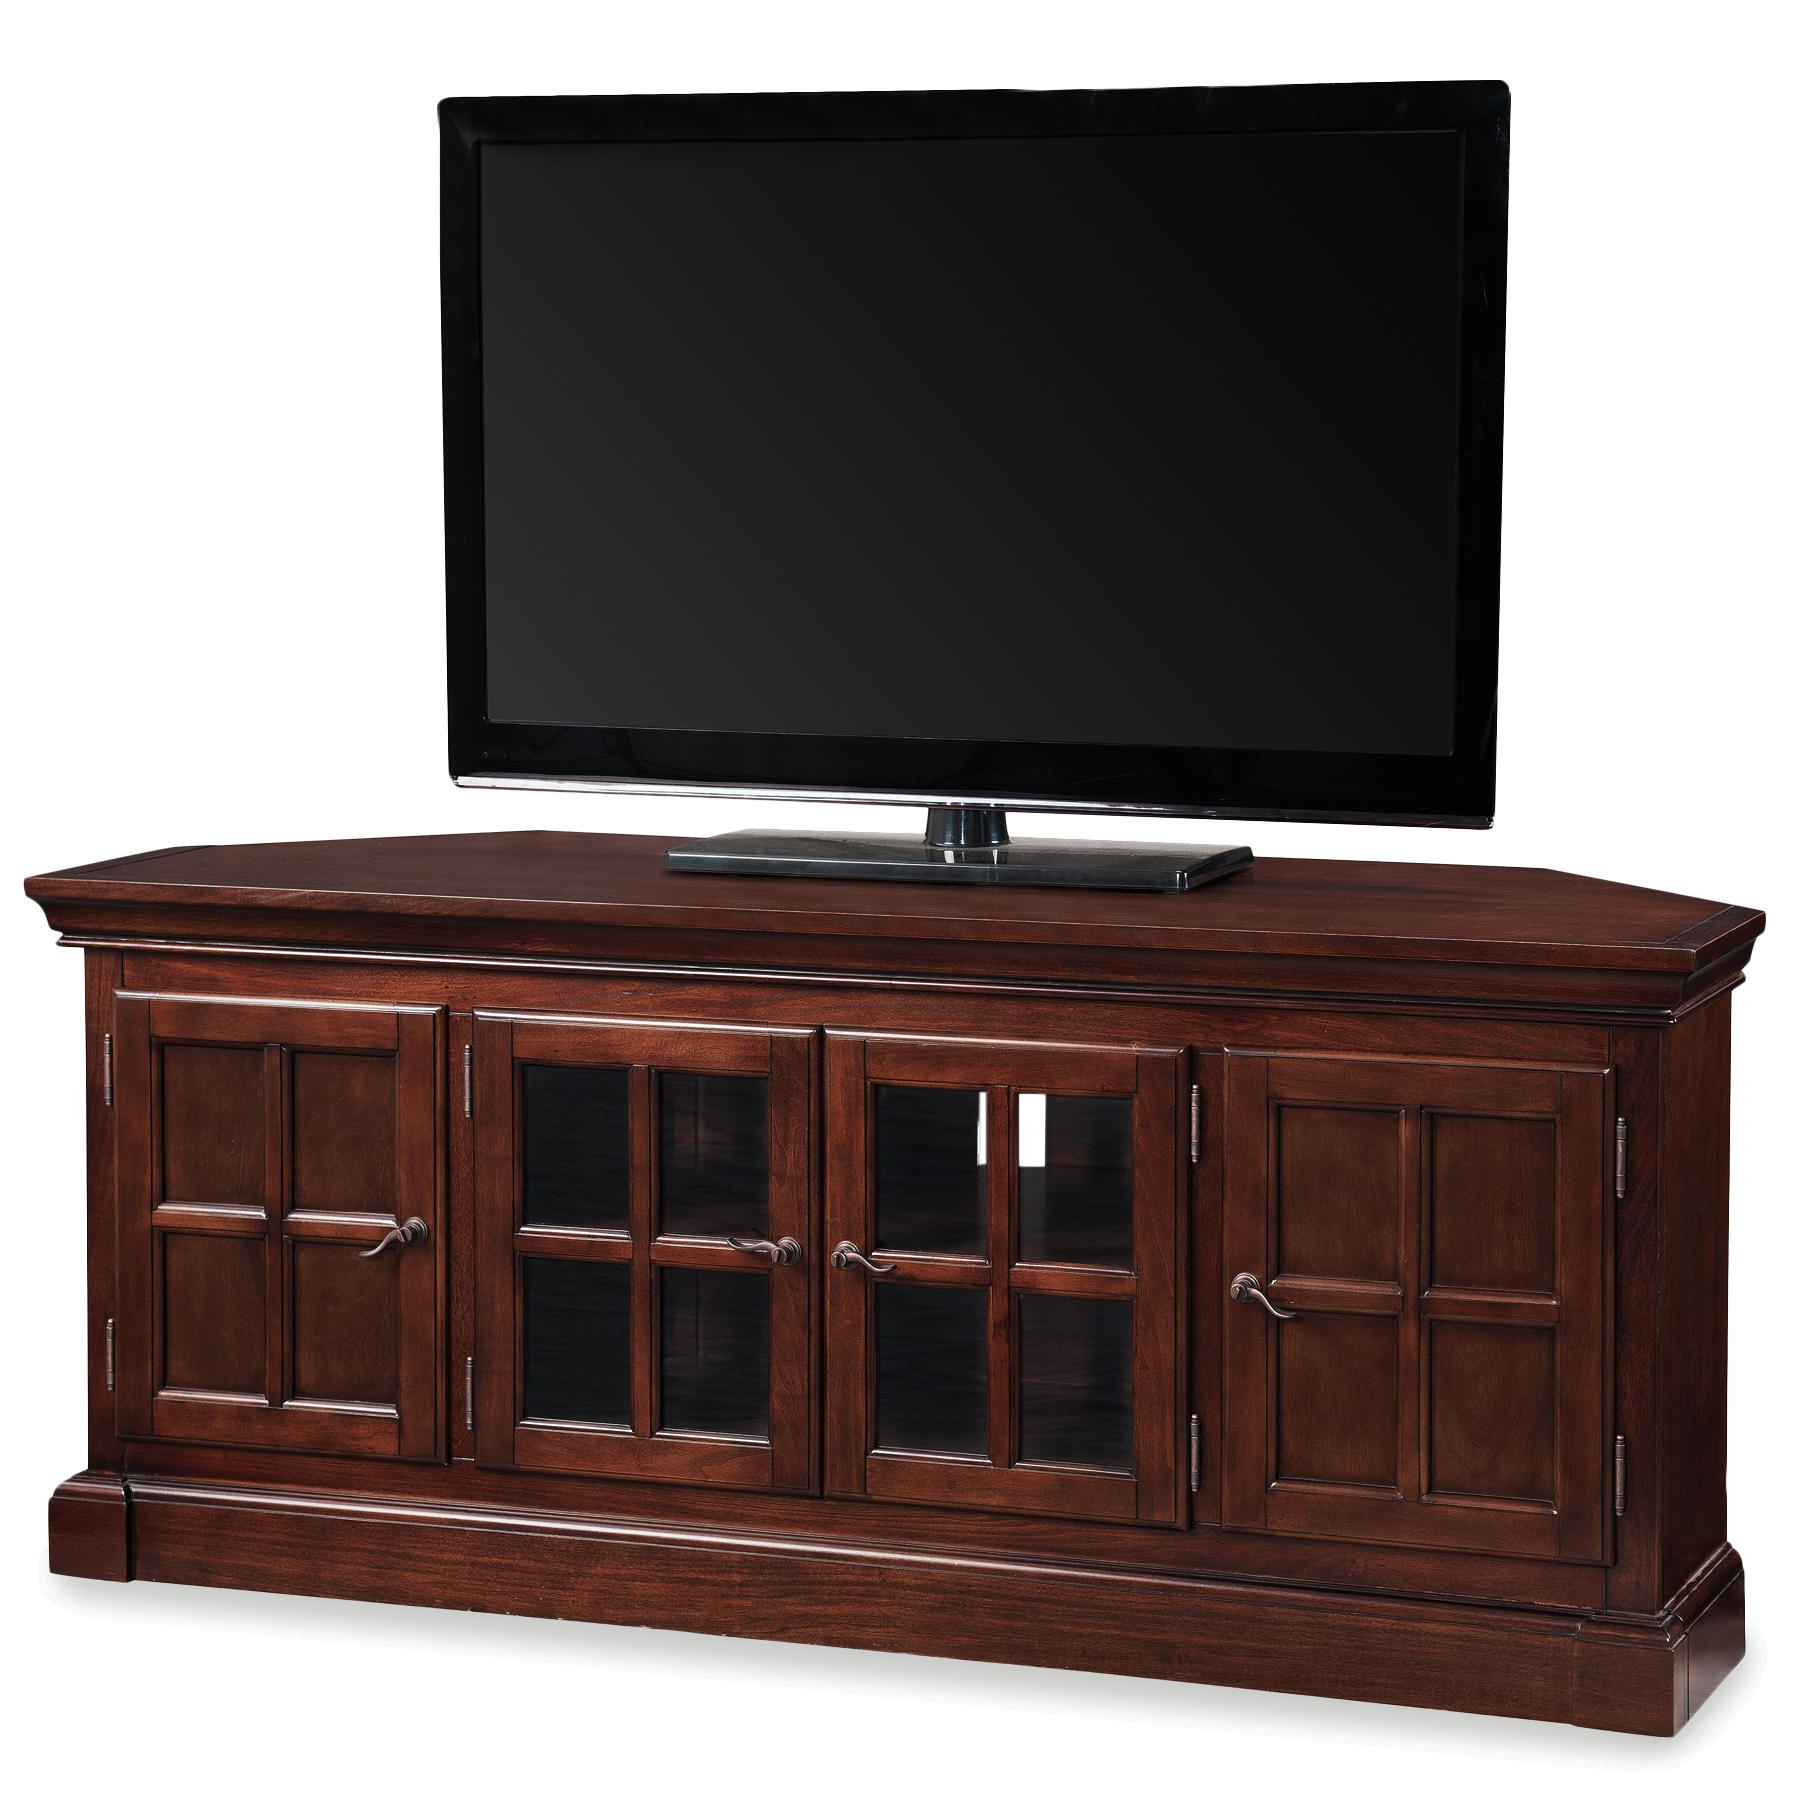 "Well Known Compact Corner Tv Stands With Regard To Amazon: Leick 81586 Bella Maison 56"" Corner Tv Stand With Lever (View 17 of 20)"